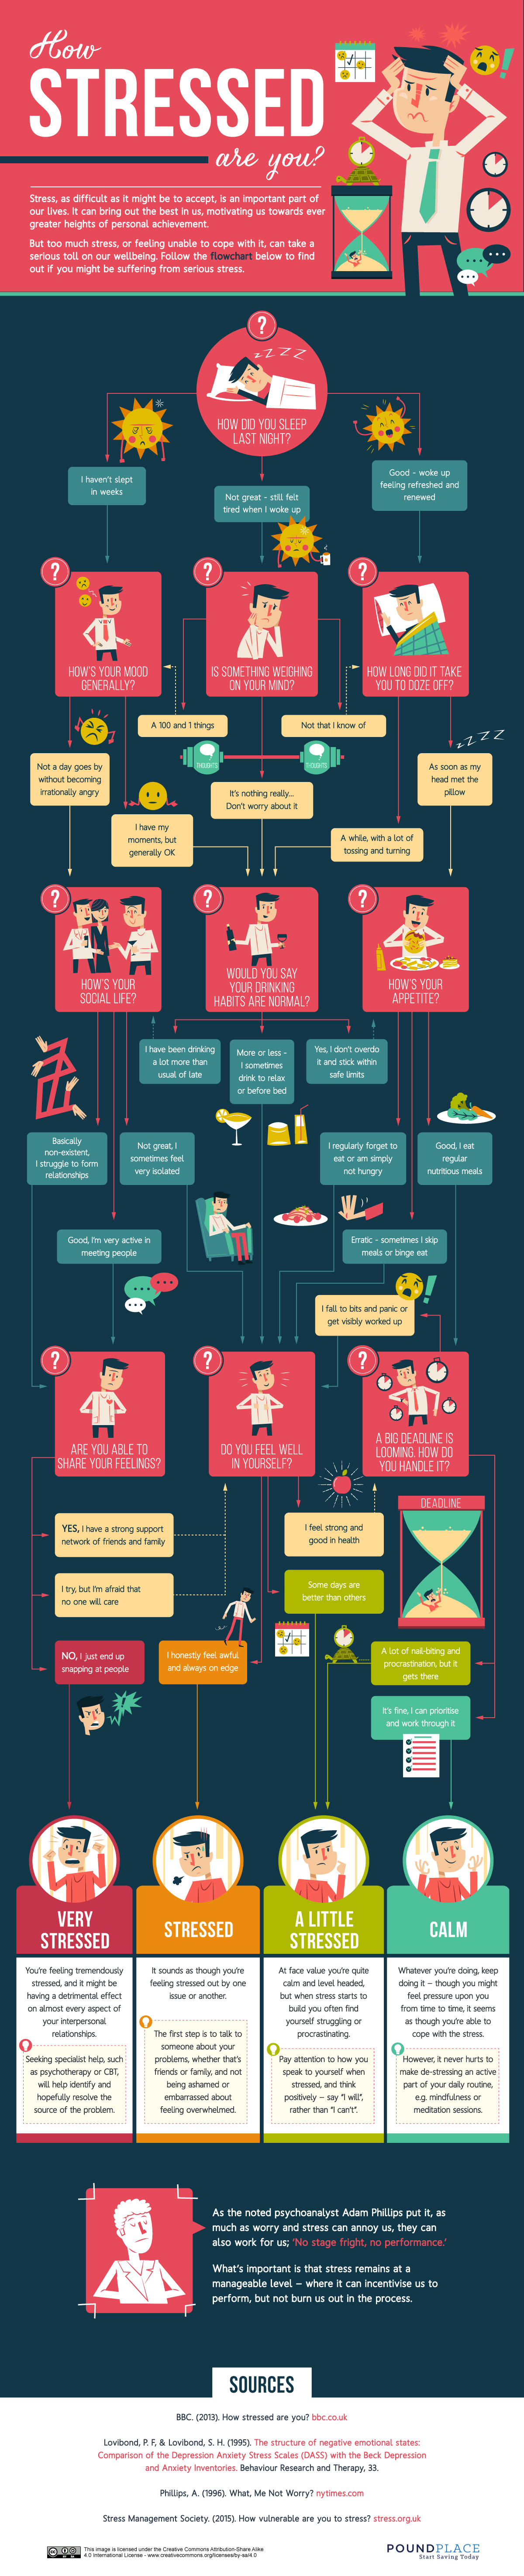 how-stressed-are-you-infographic